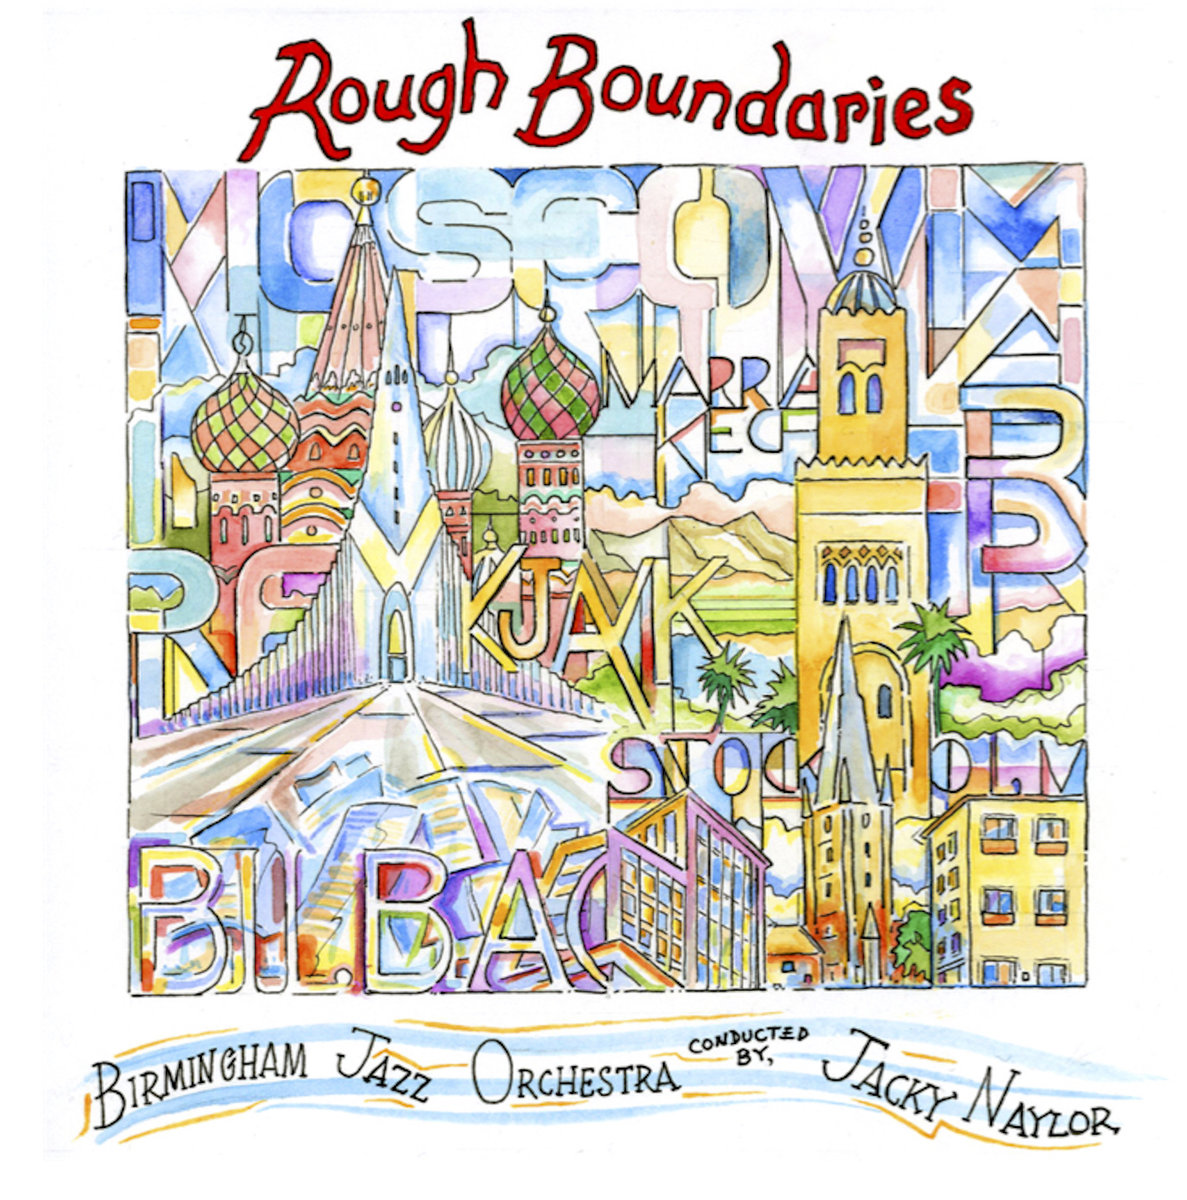 Birmingham Jazz Orchestra Conducted - Jacky Naylor - Rough Boundaries